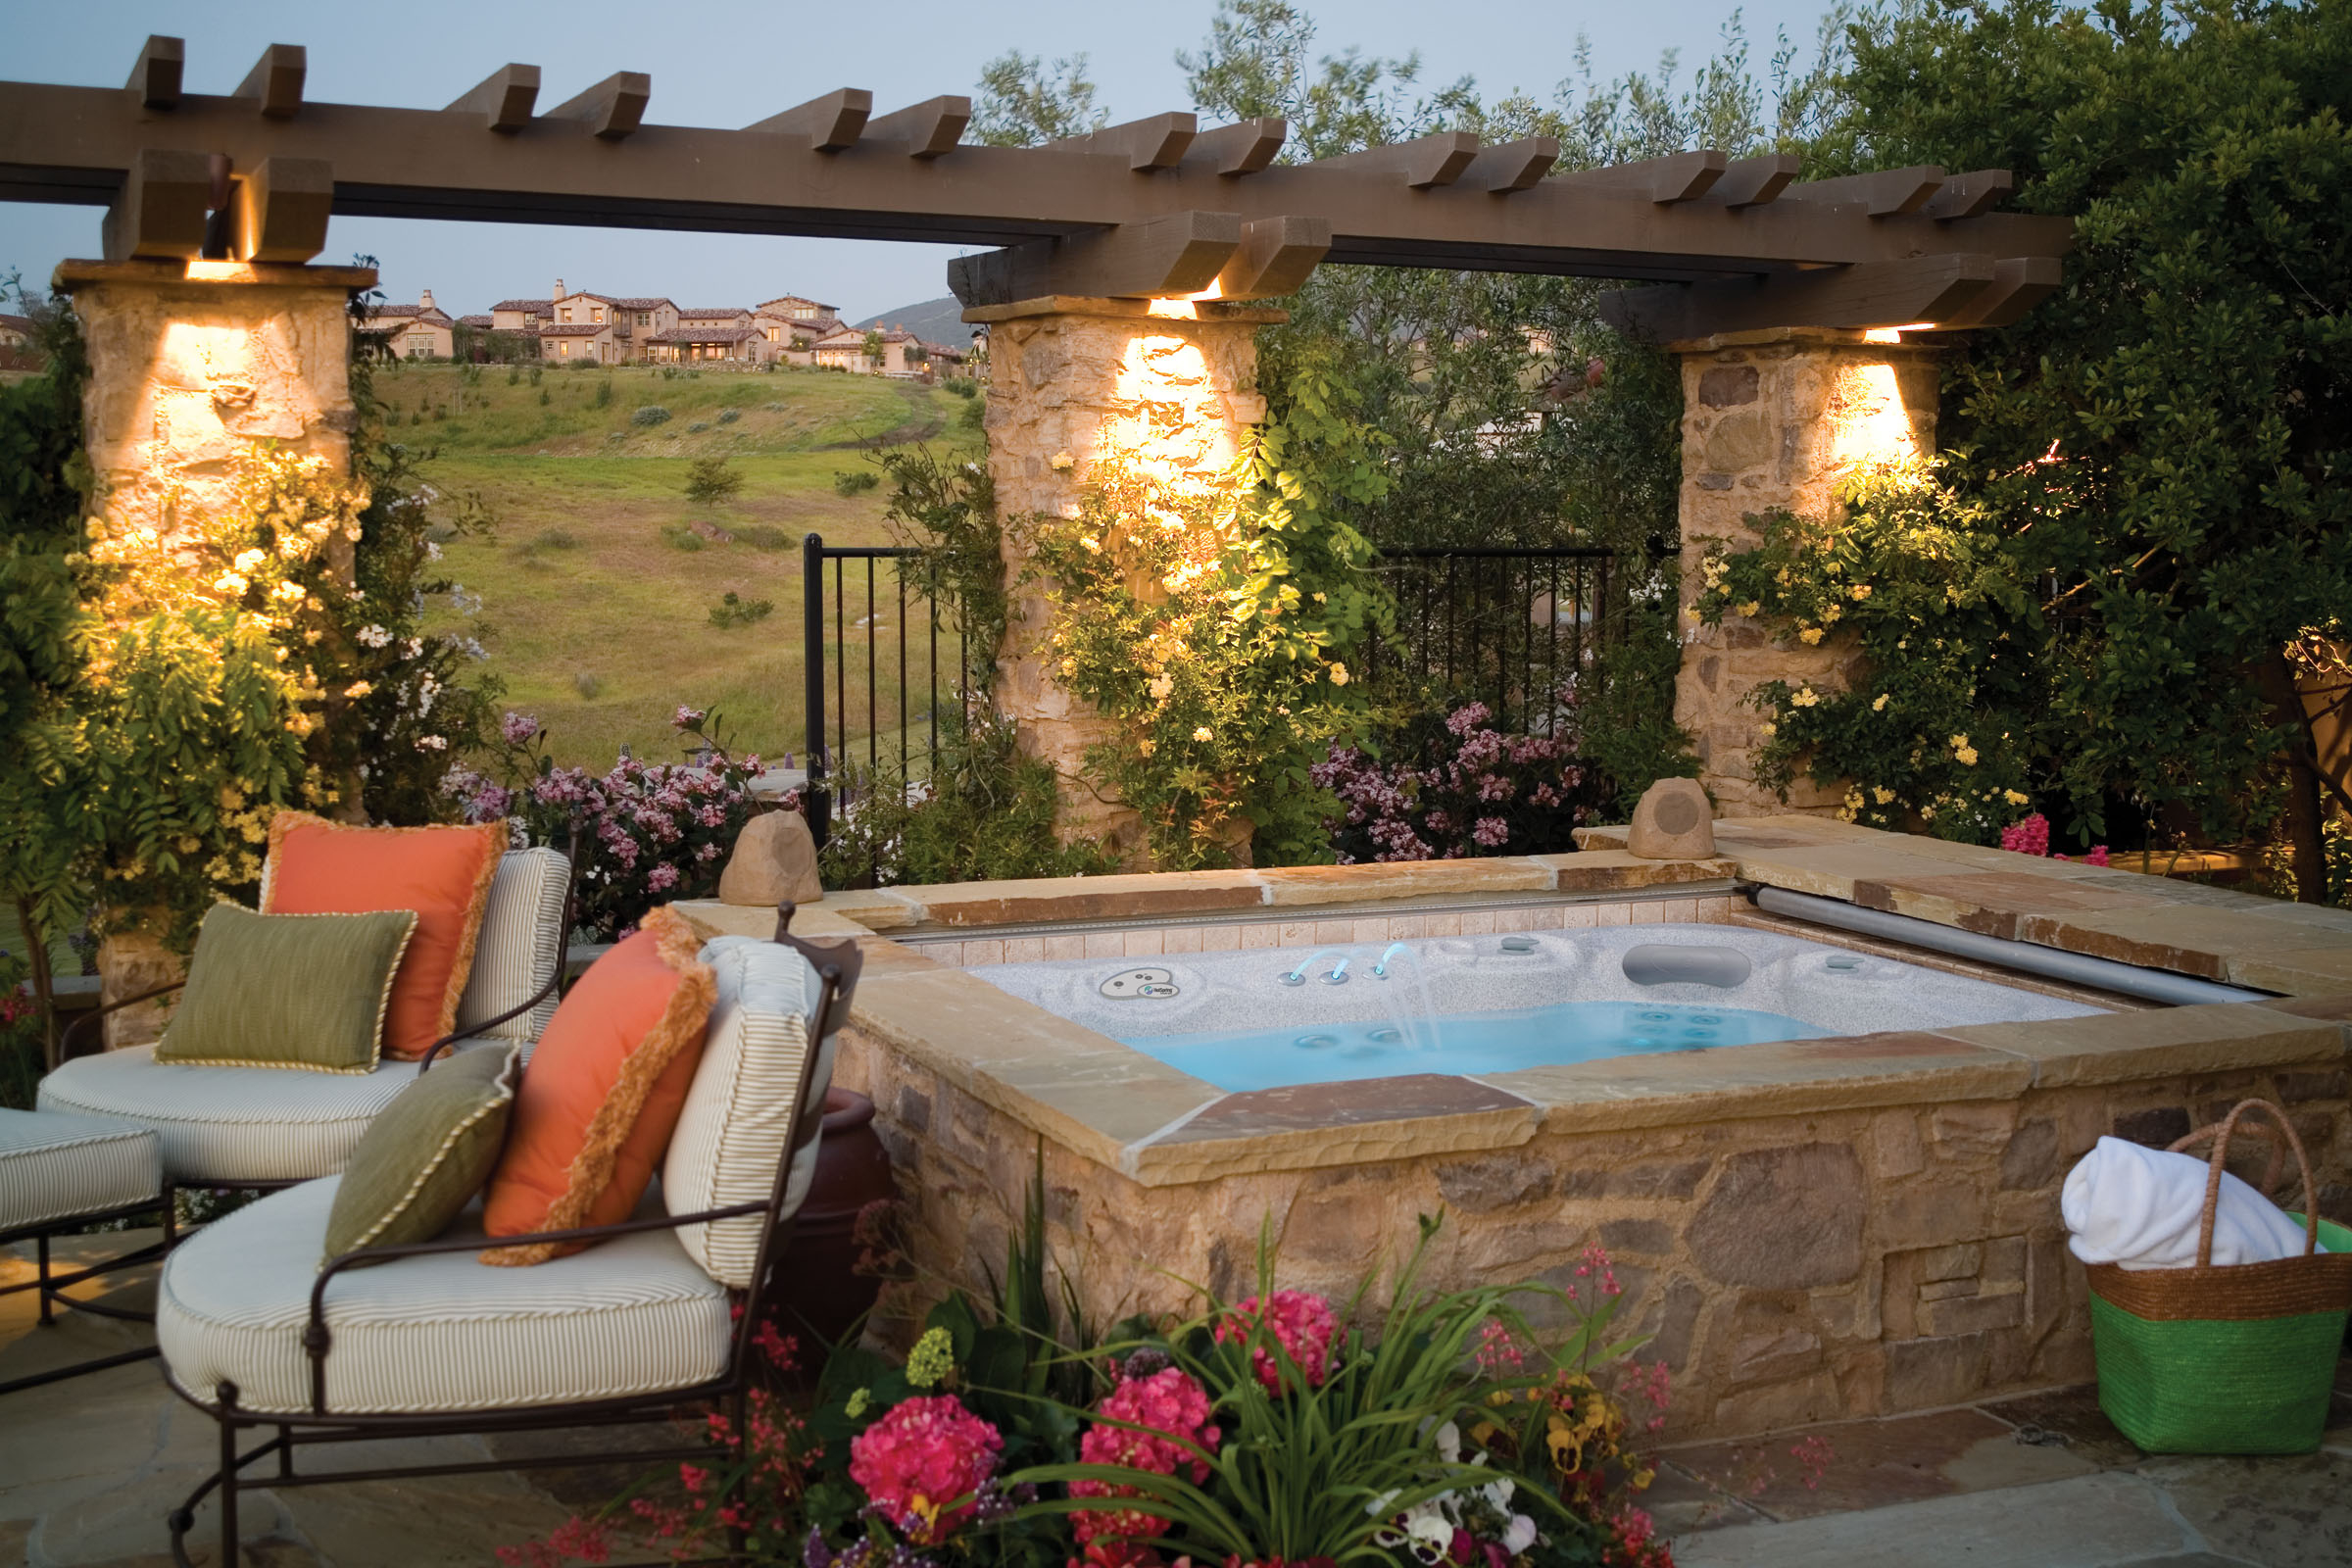 Incredible Backyard Landscaping Ideas With Jacuzzi Yentua in Backyard Ideas With Hot Tub